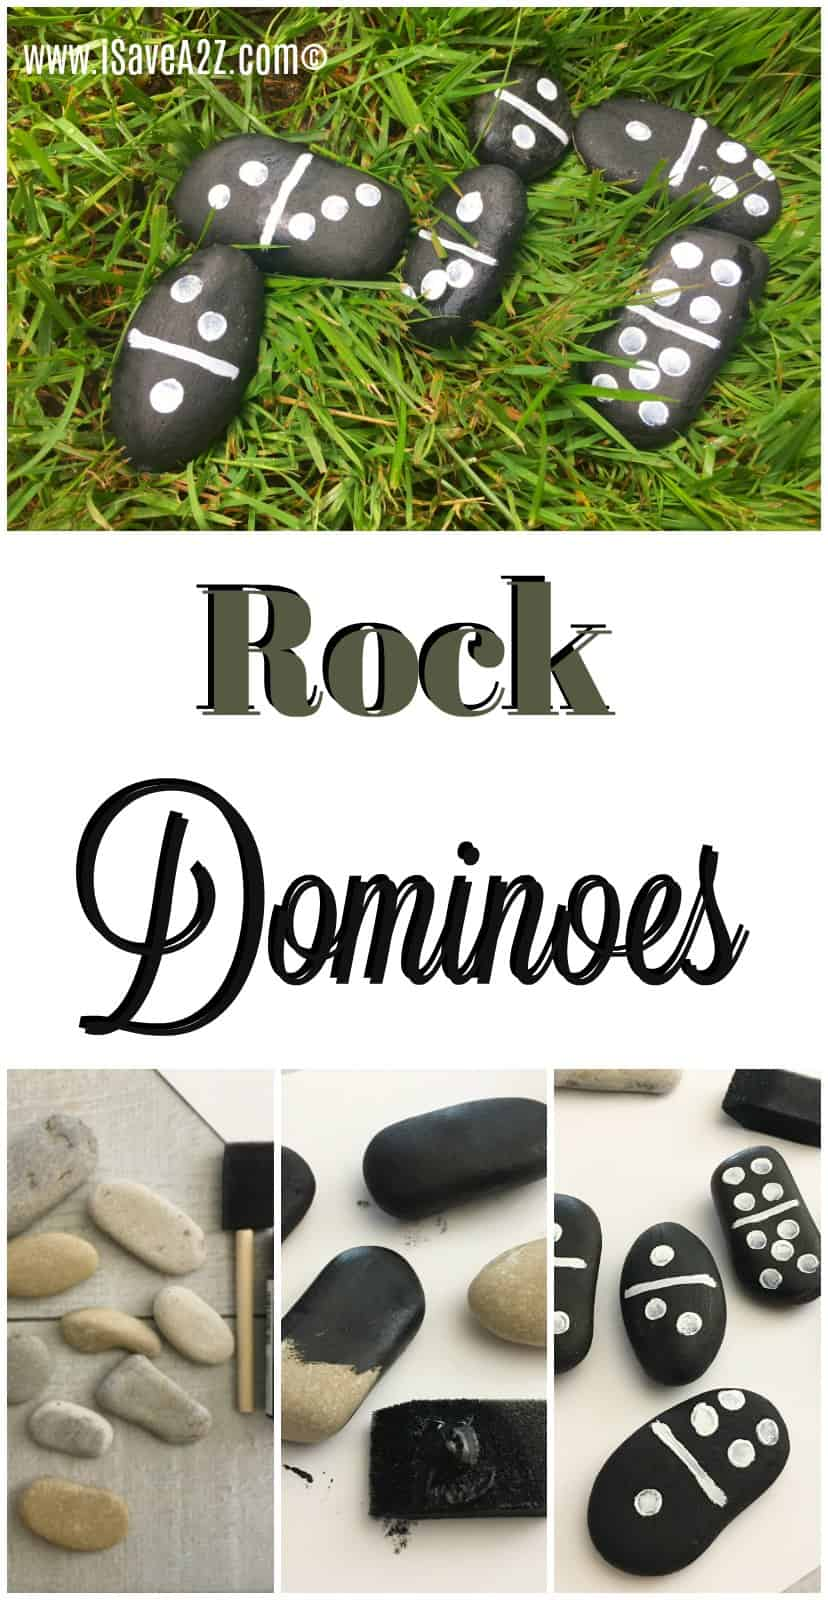 Smooth rocks aren't just for skipping them across the water anymore! You can make Rock Dominoes! With 28 smooth oval shaped rocks, you and your kids can make this fun craft idea that you can enjoy for hours at a time.